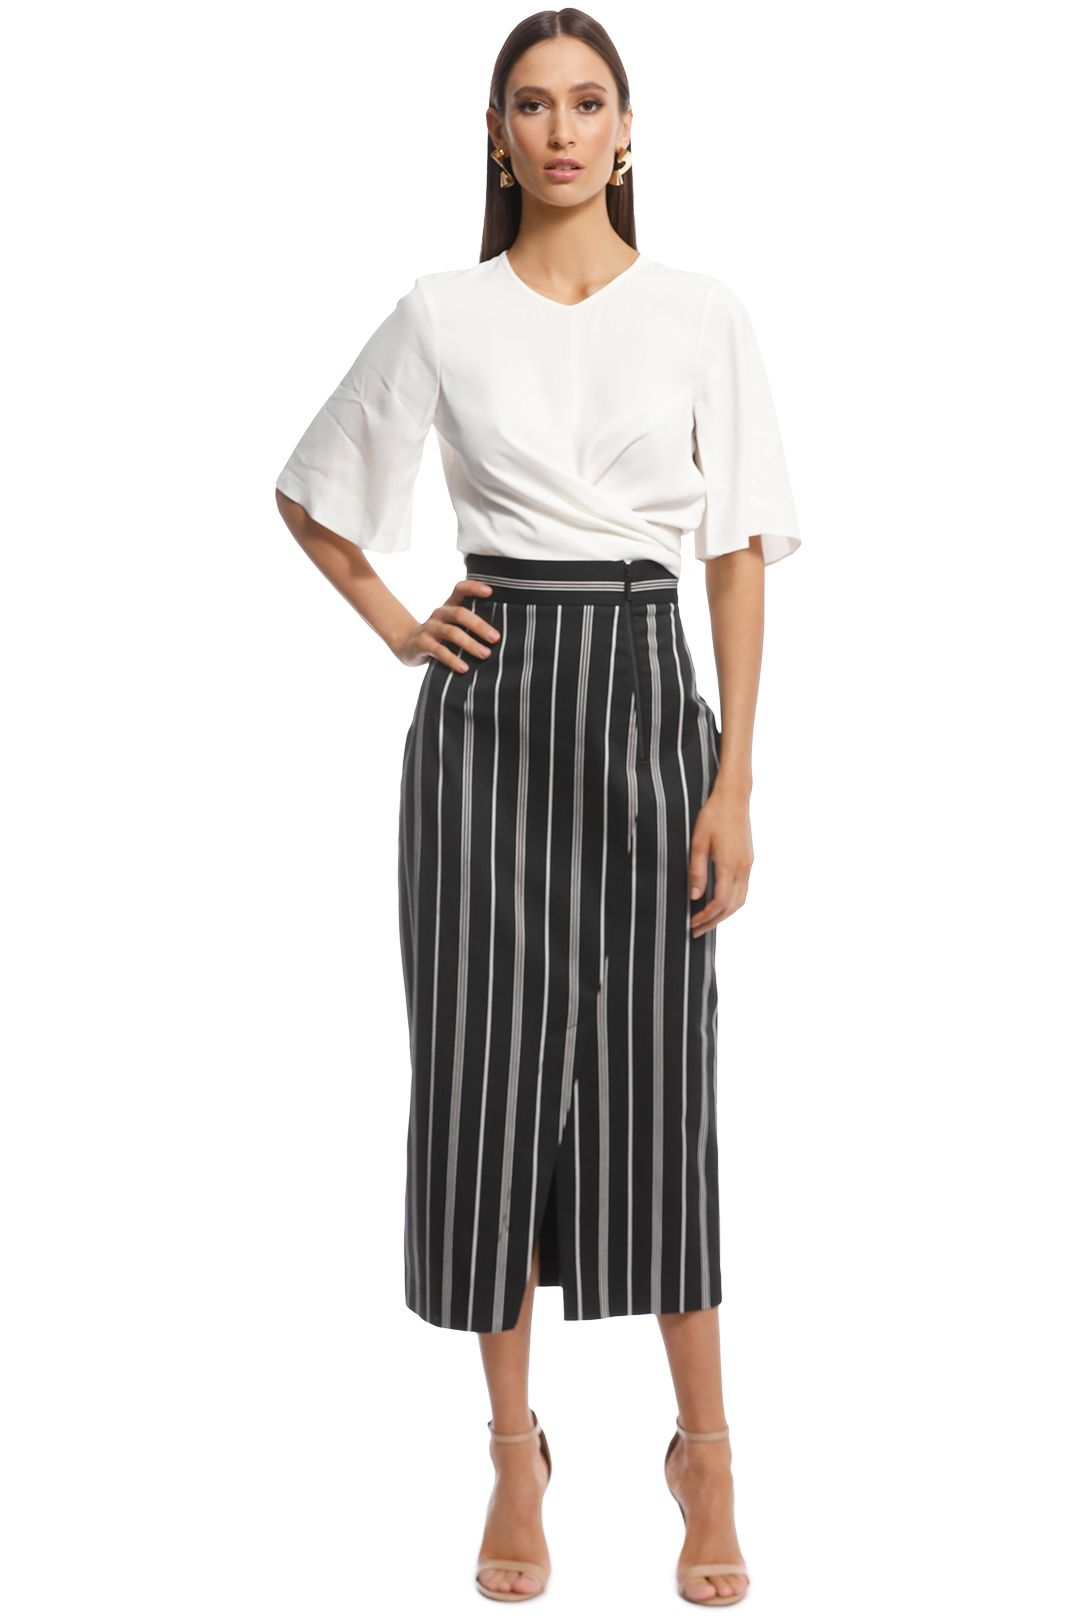 Cue - Bold Cotton Stripe Midi Skirt - Black/Grey - Front